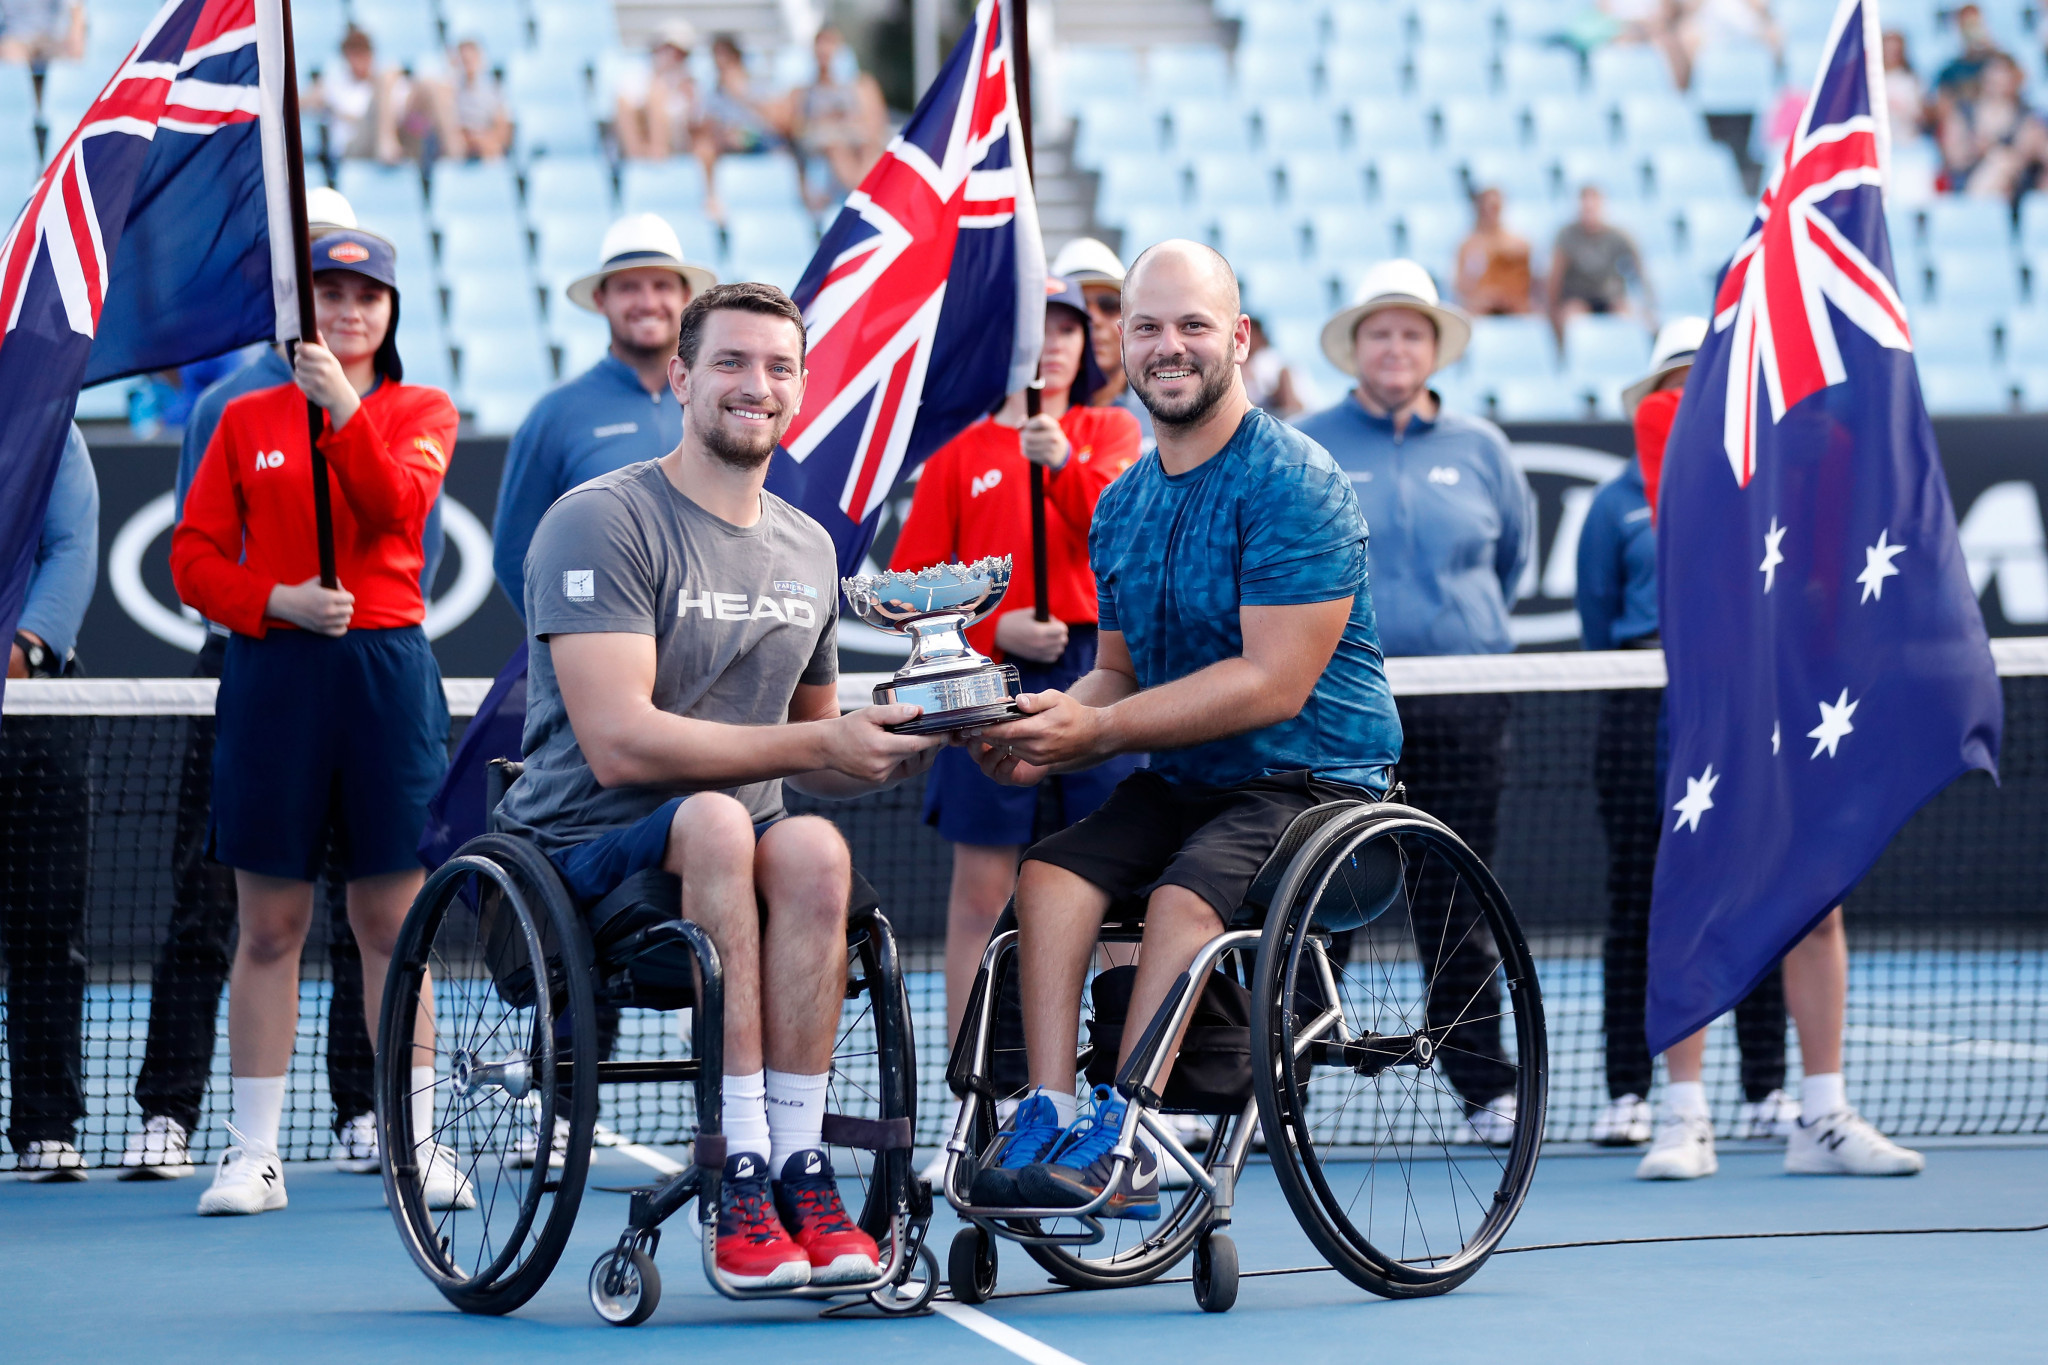 Gerard and Olsson cruise to men's wheelchair doubles title at Australian Open